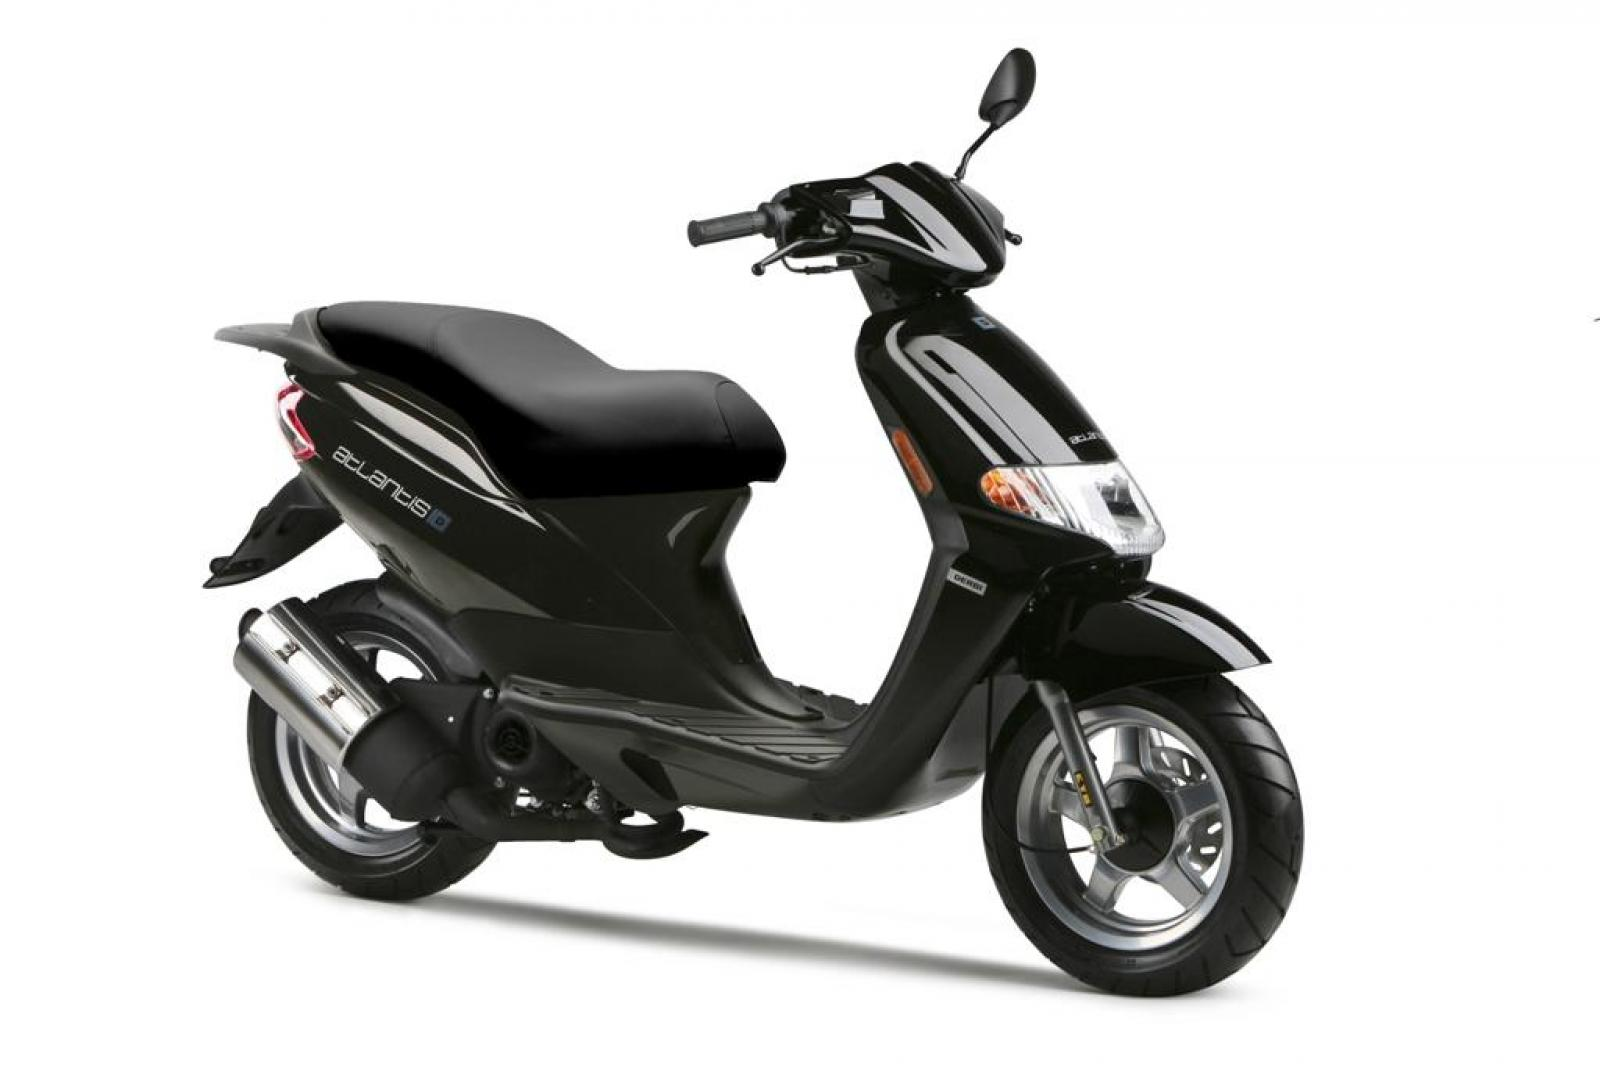 2010 Derbi Atlantis City 50 2T #1